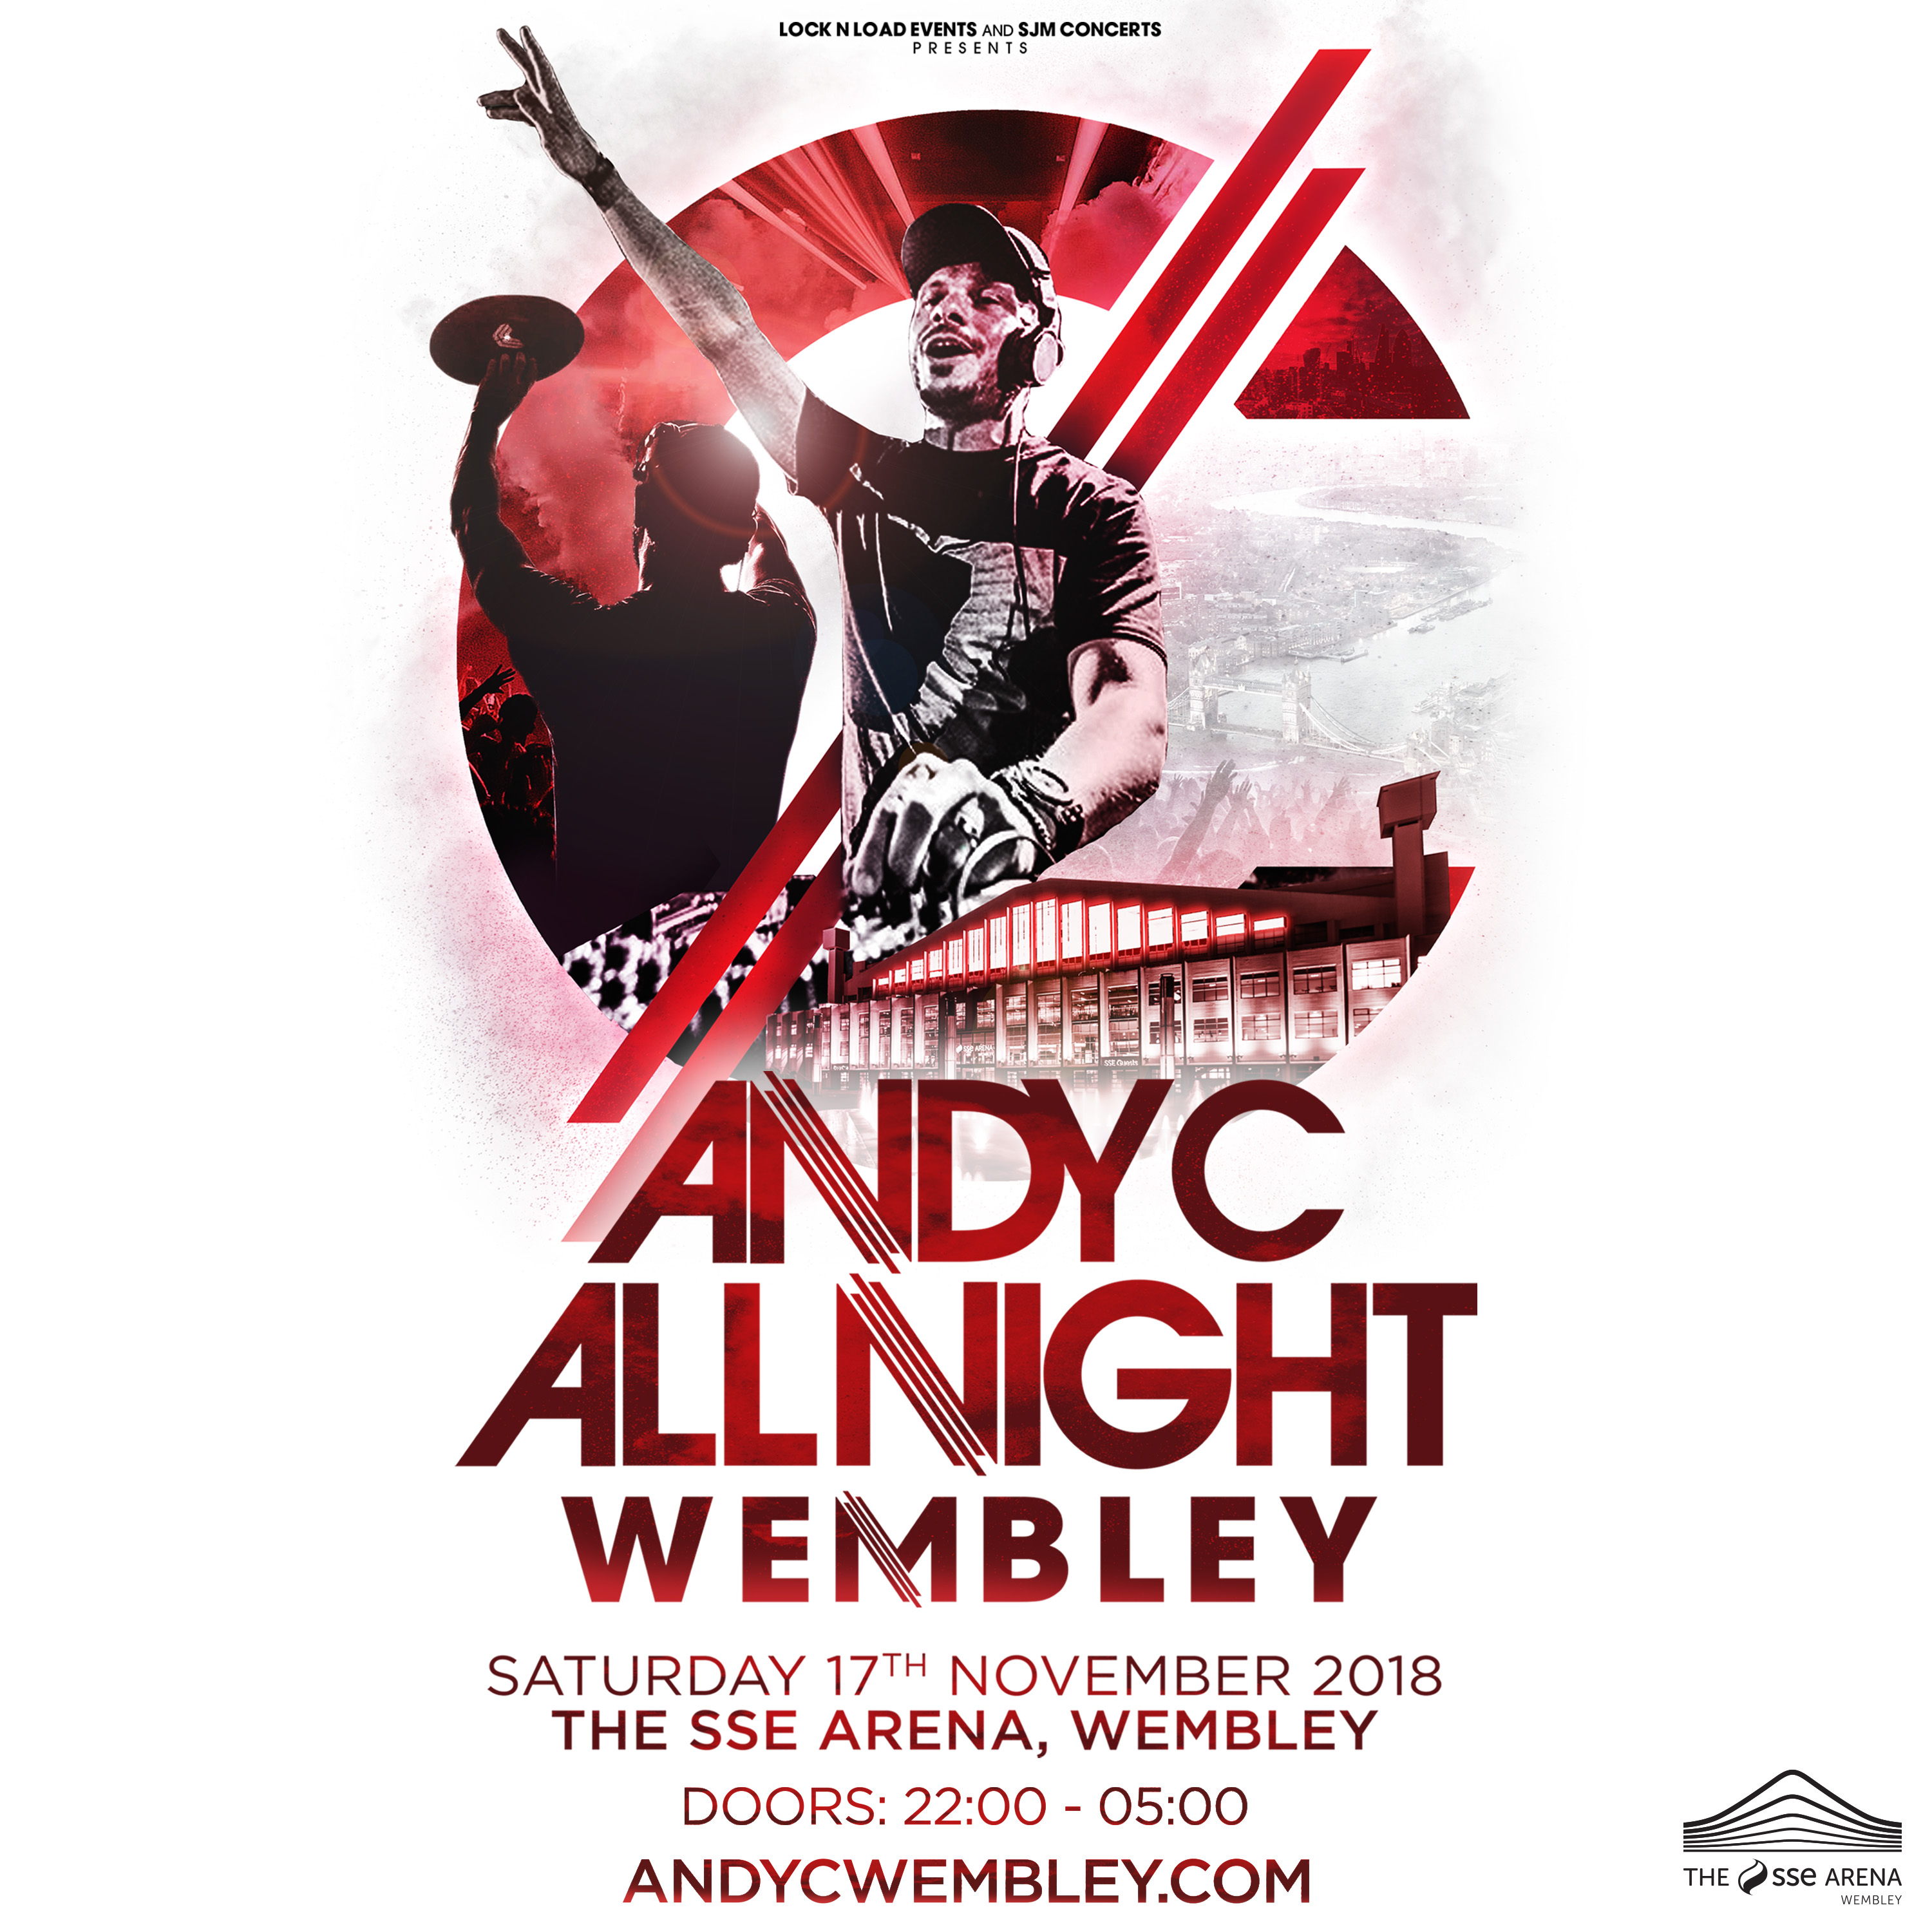 ANDY C ALL NIGHT AT WEMBLEY ARENA!